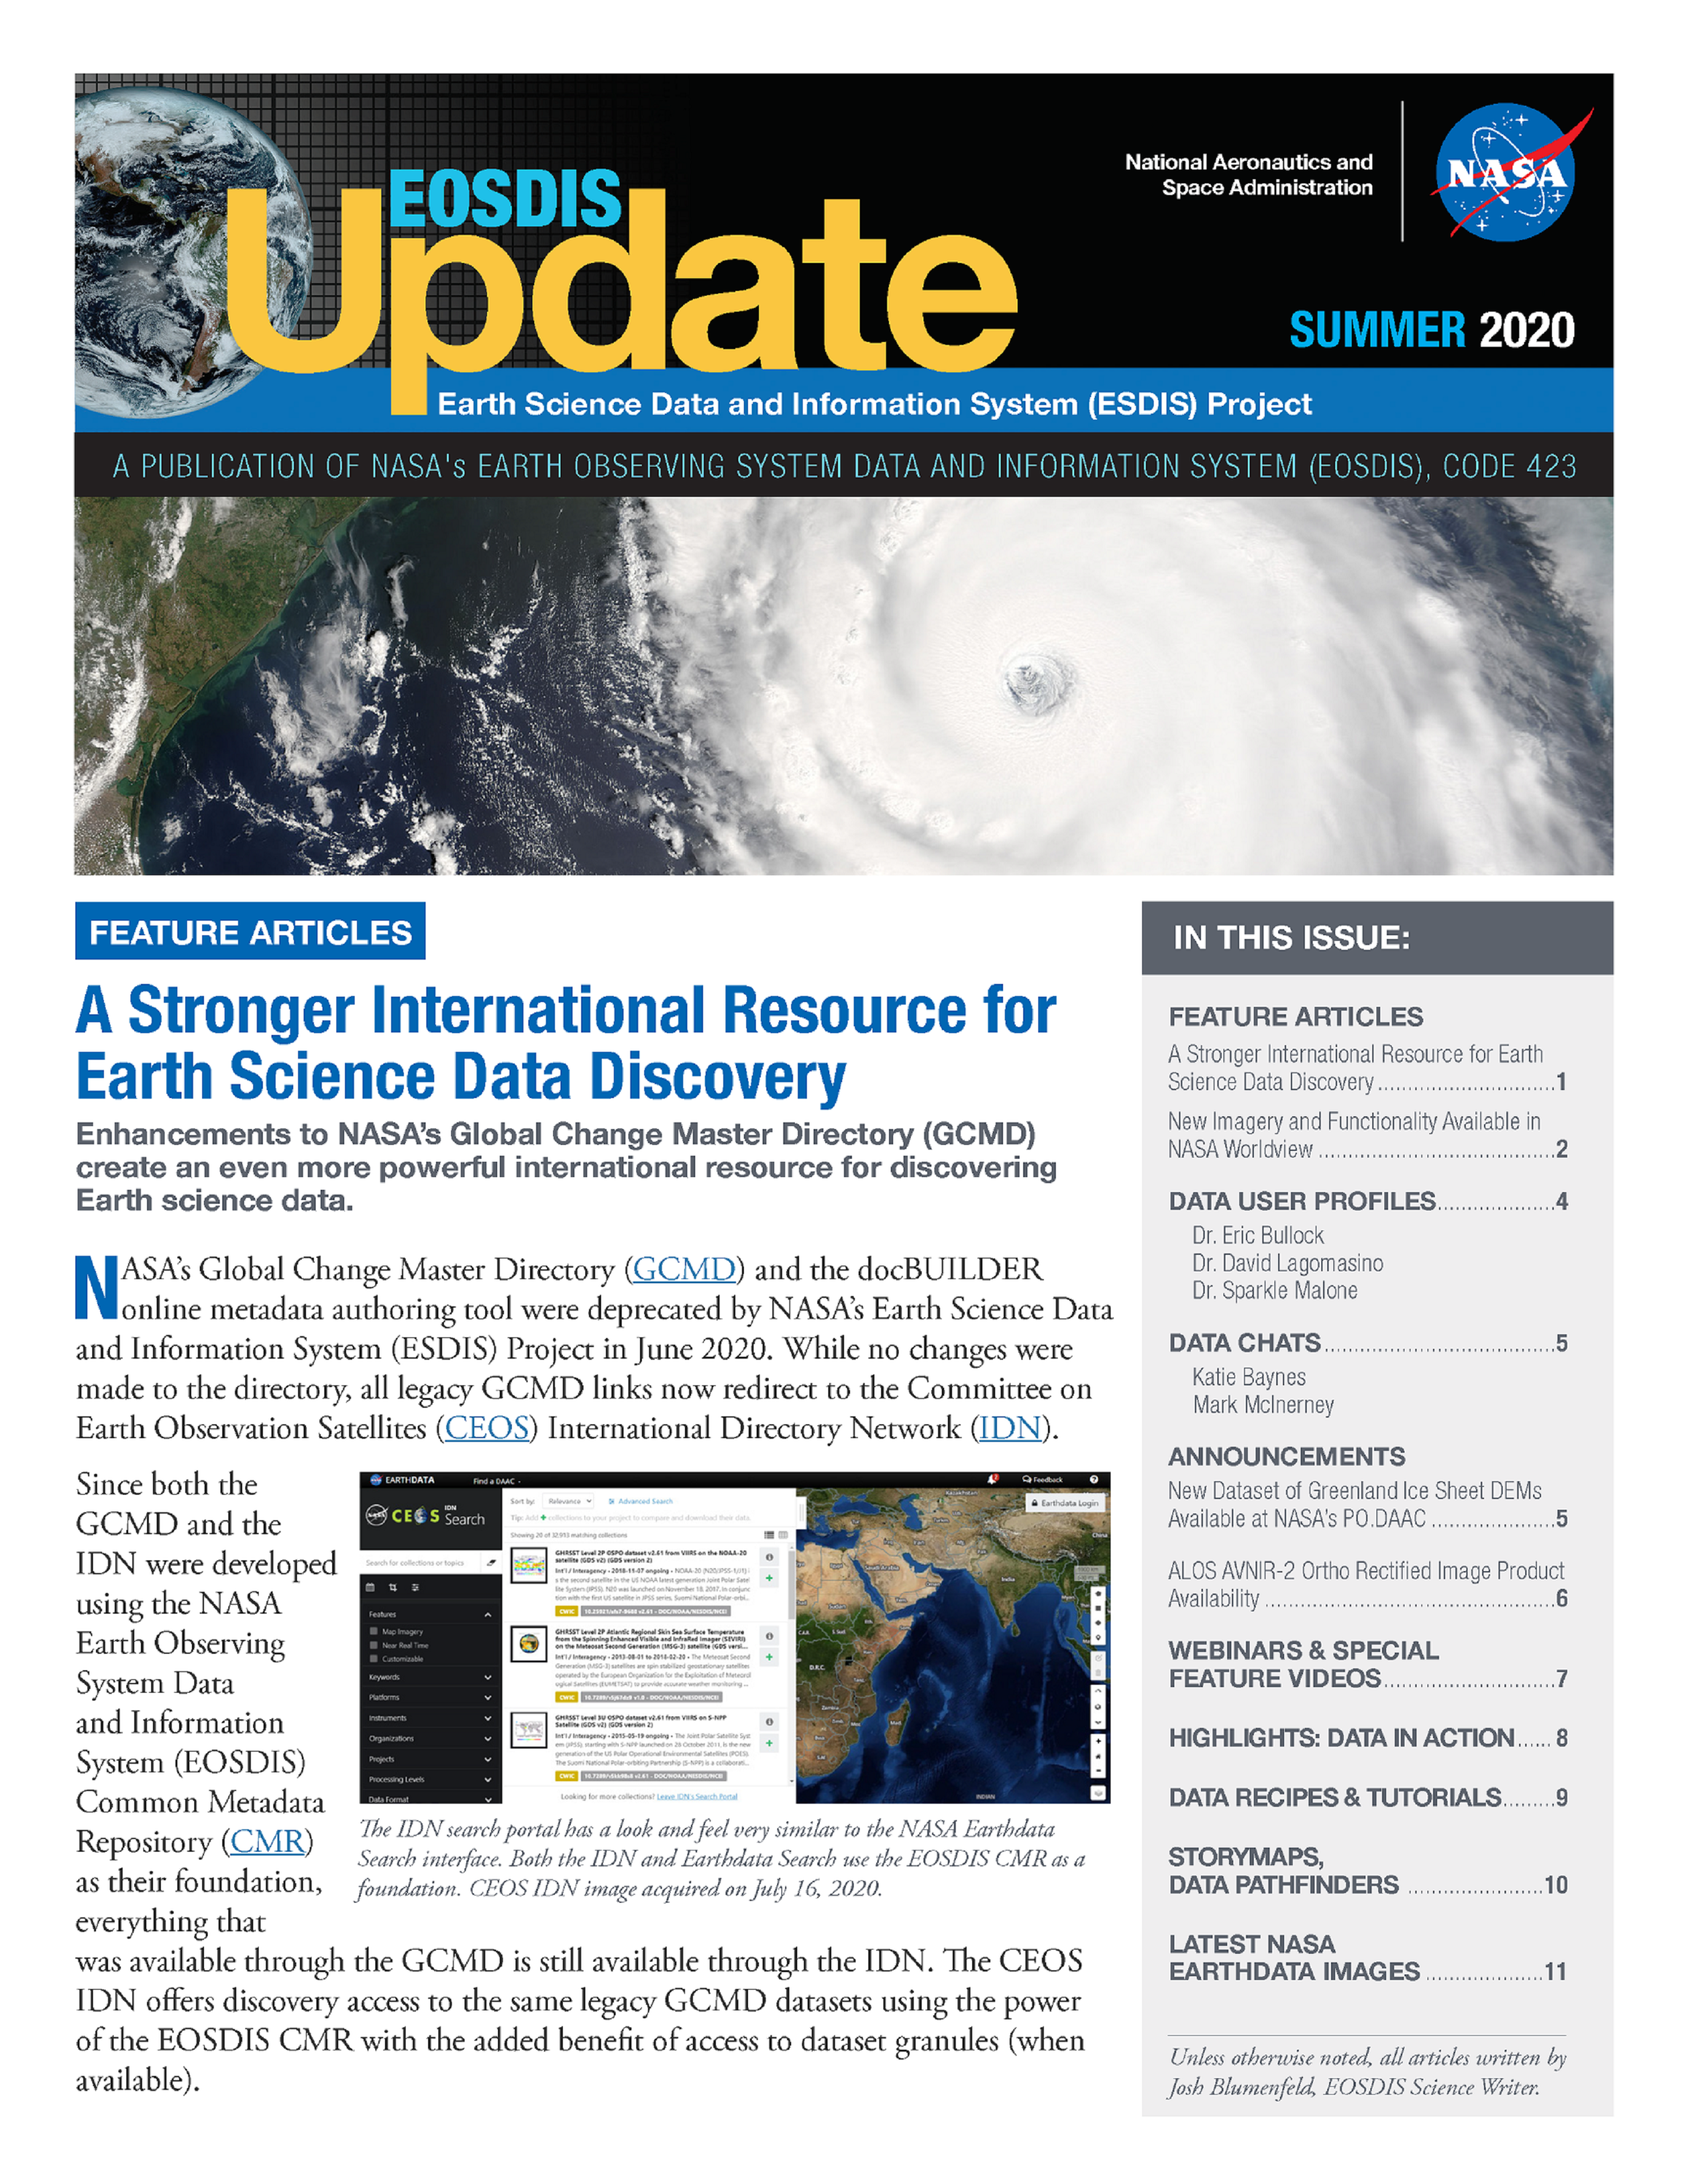 EOSDIS Quarterly Update- Summer 2020 Newsletter Cover Image